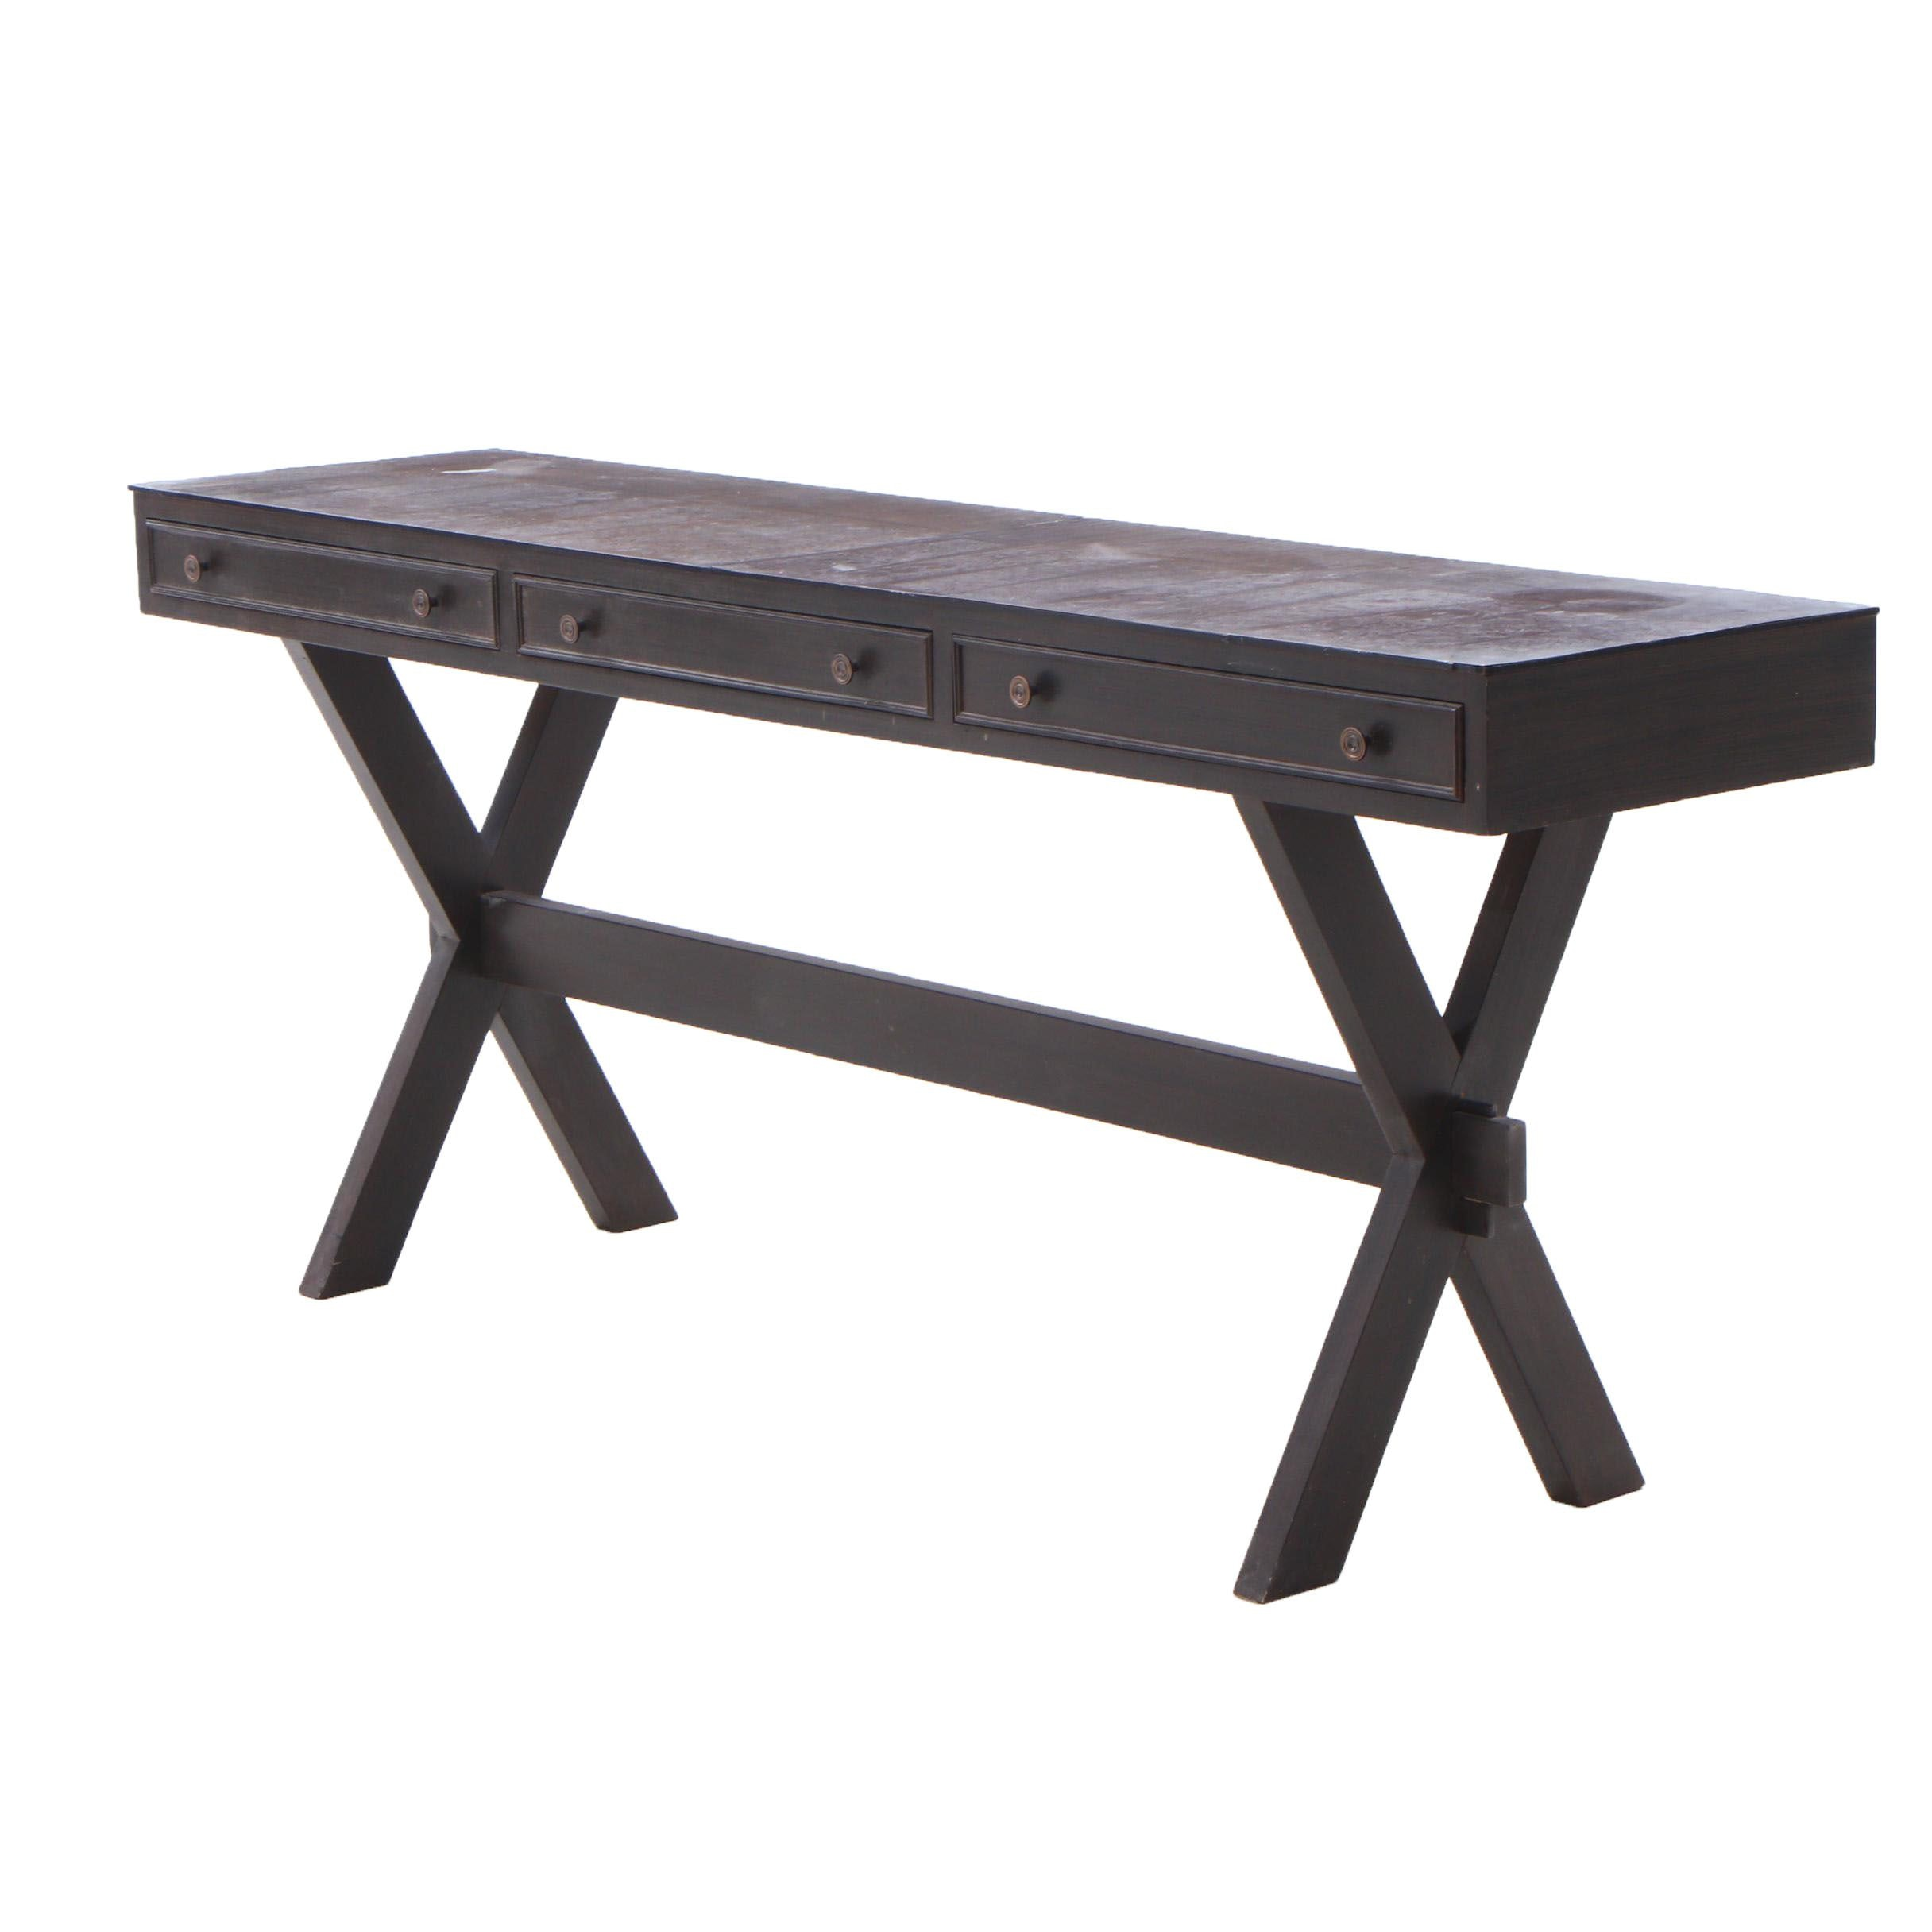 Modernist Embossed Linoleum Top Console Table, Late 20th Century